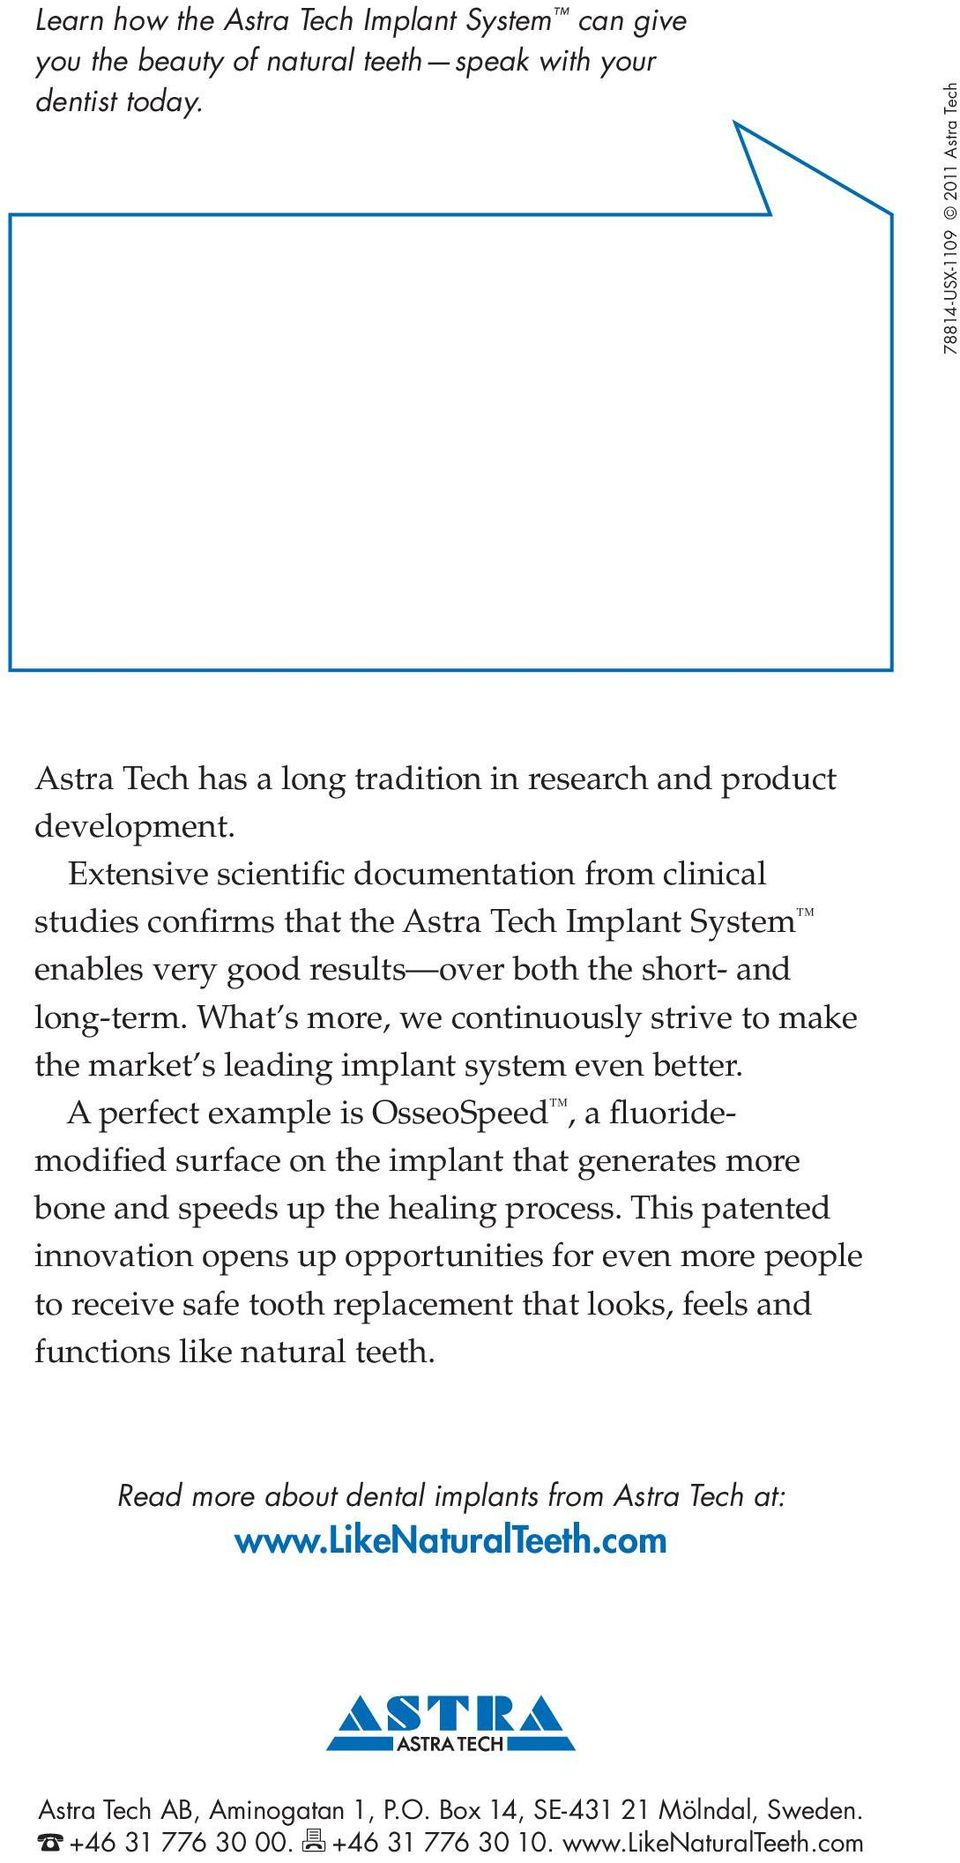 Extensive scientific documentation from clinical studies confirms that the Astra Tech Implant System enables very good results over both the short- and long-term.